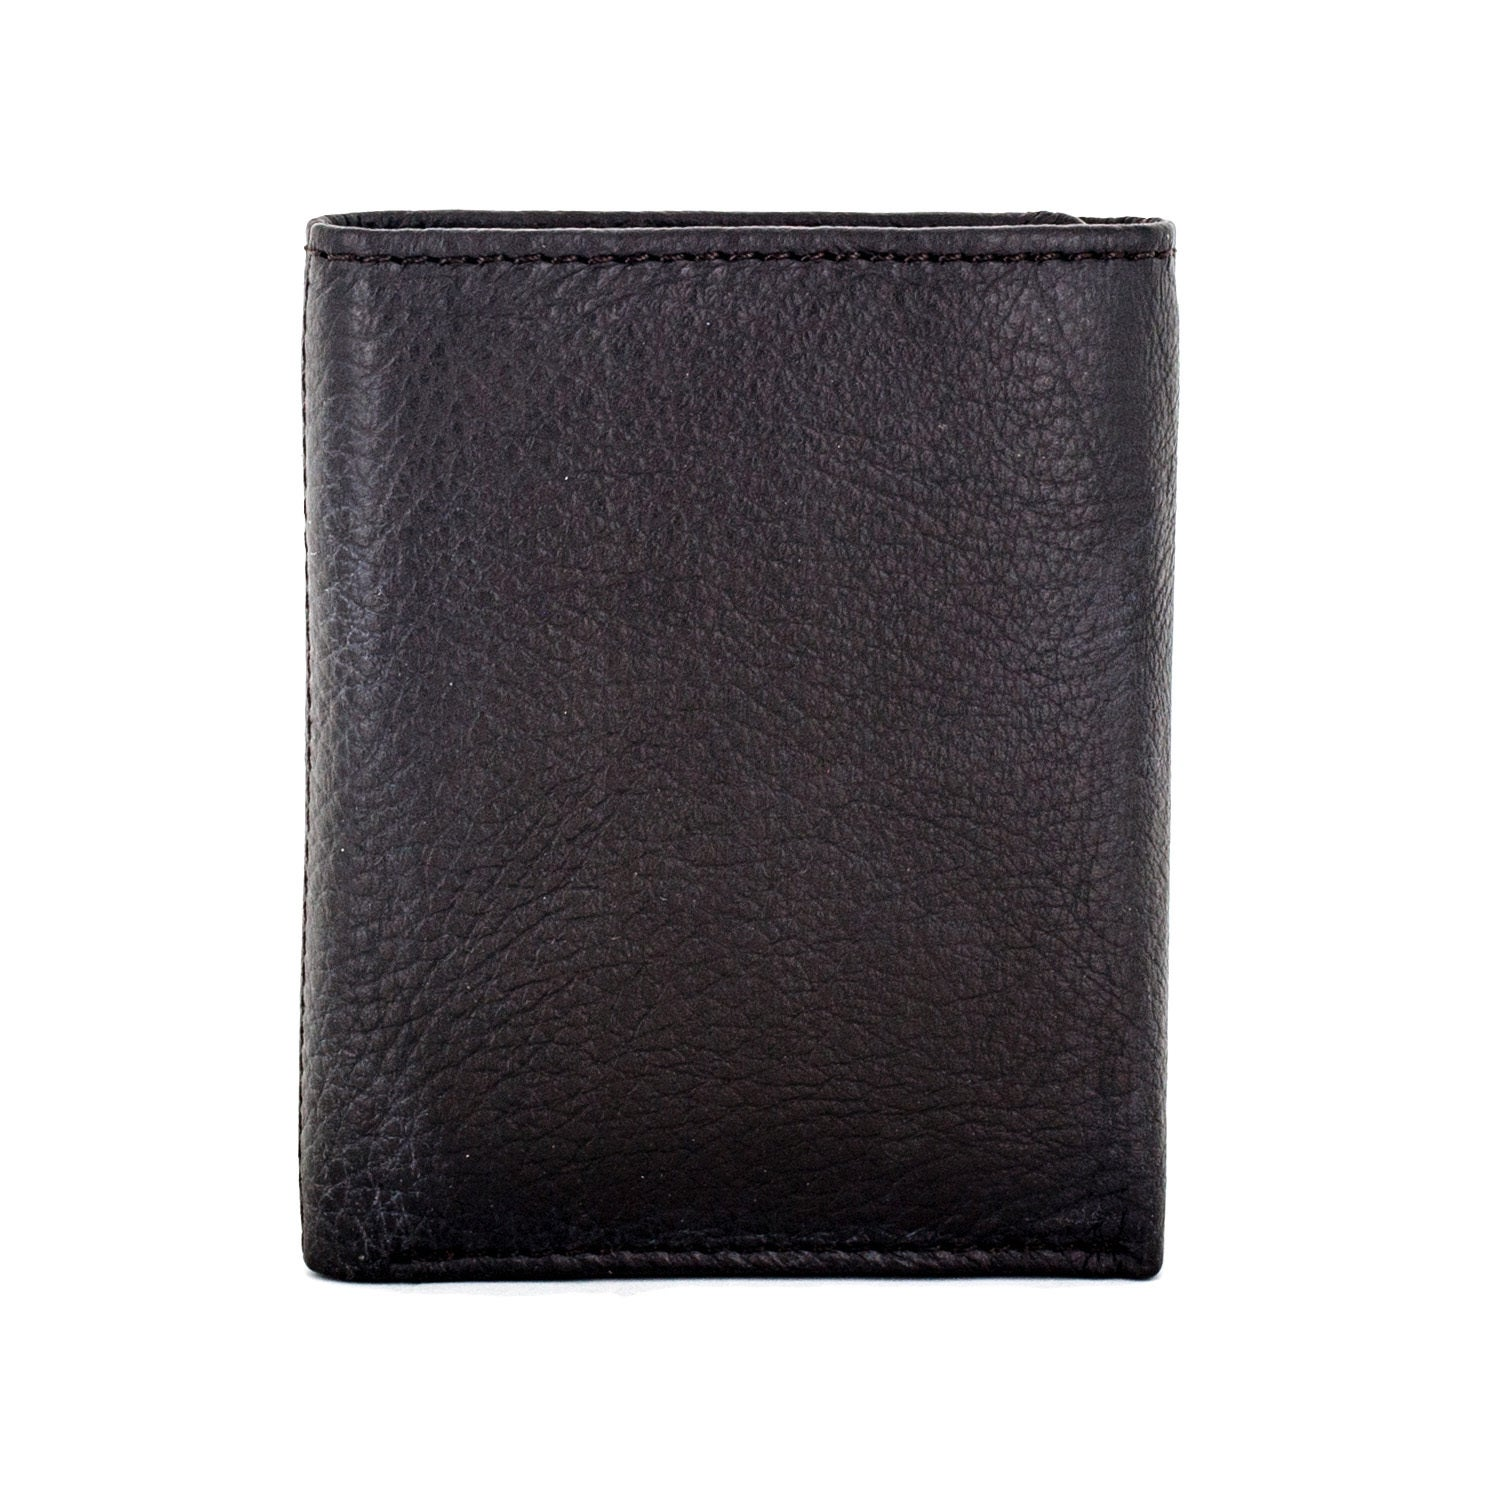 cba81eccc050 Faddism Vermont Men's Black/Brown Leather Trifold Wallet - Free ...